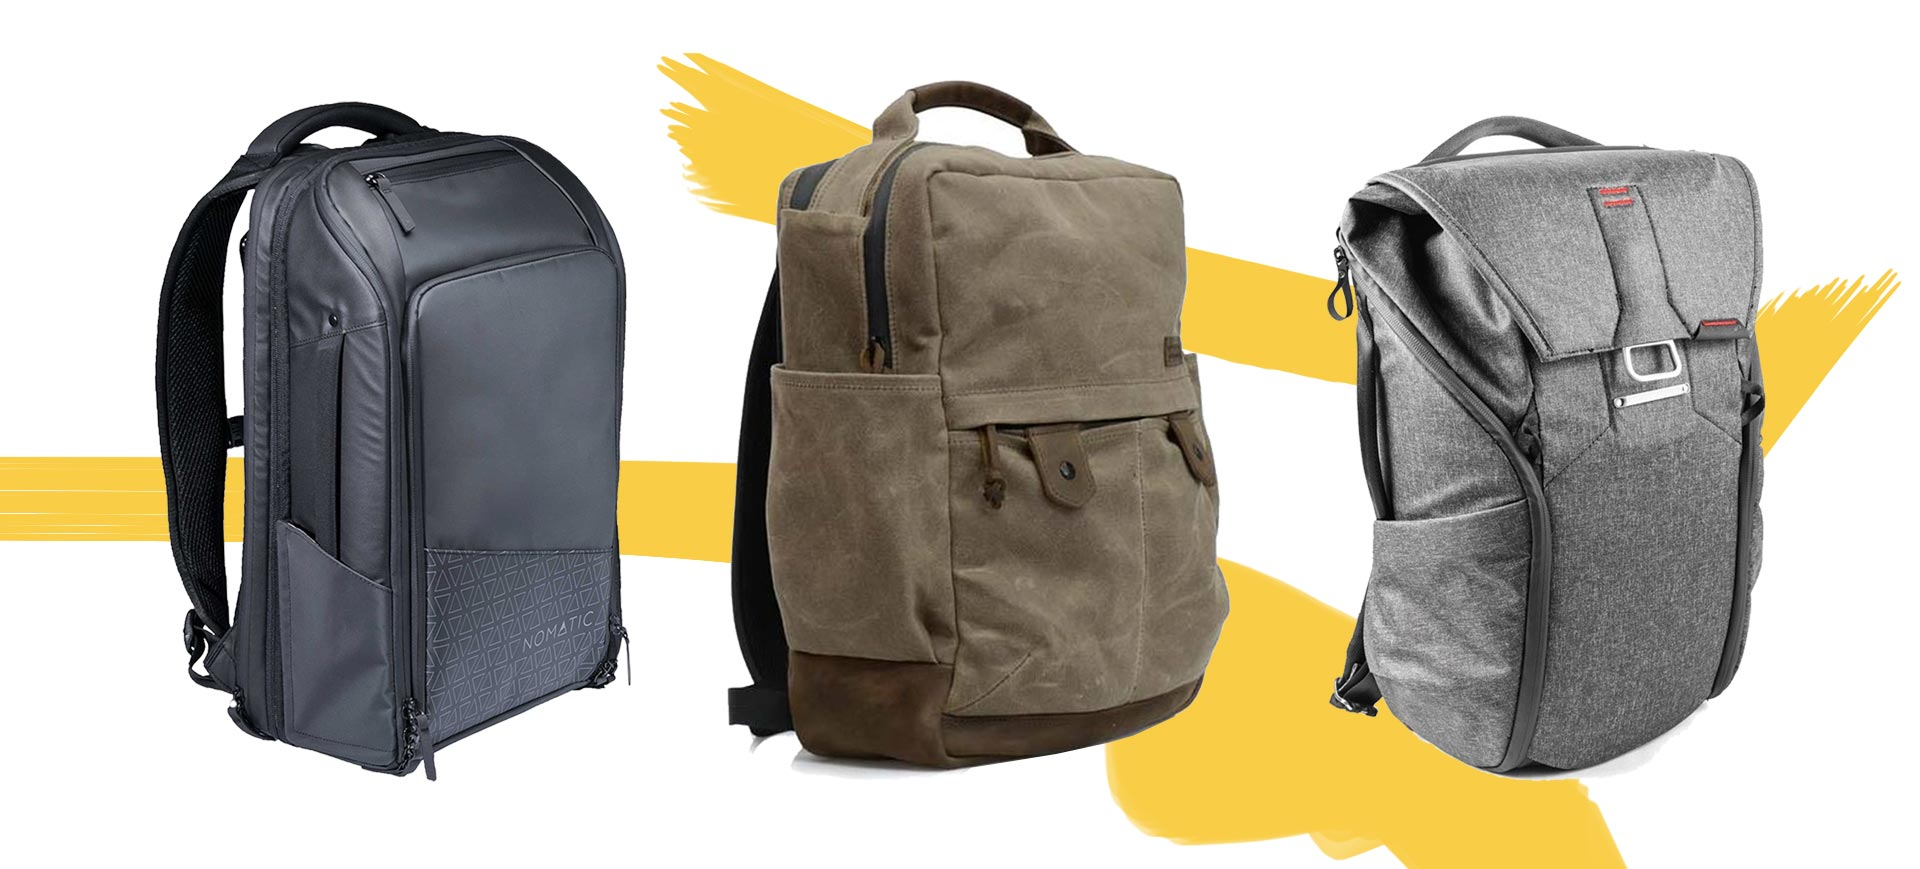 The Big List of Modern, Stylish Daily Carry Bags